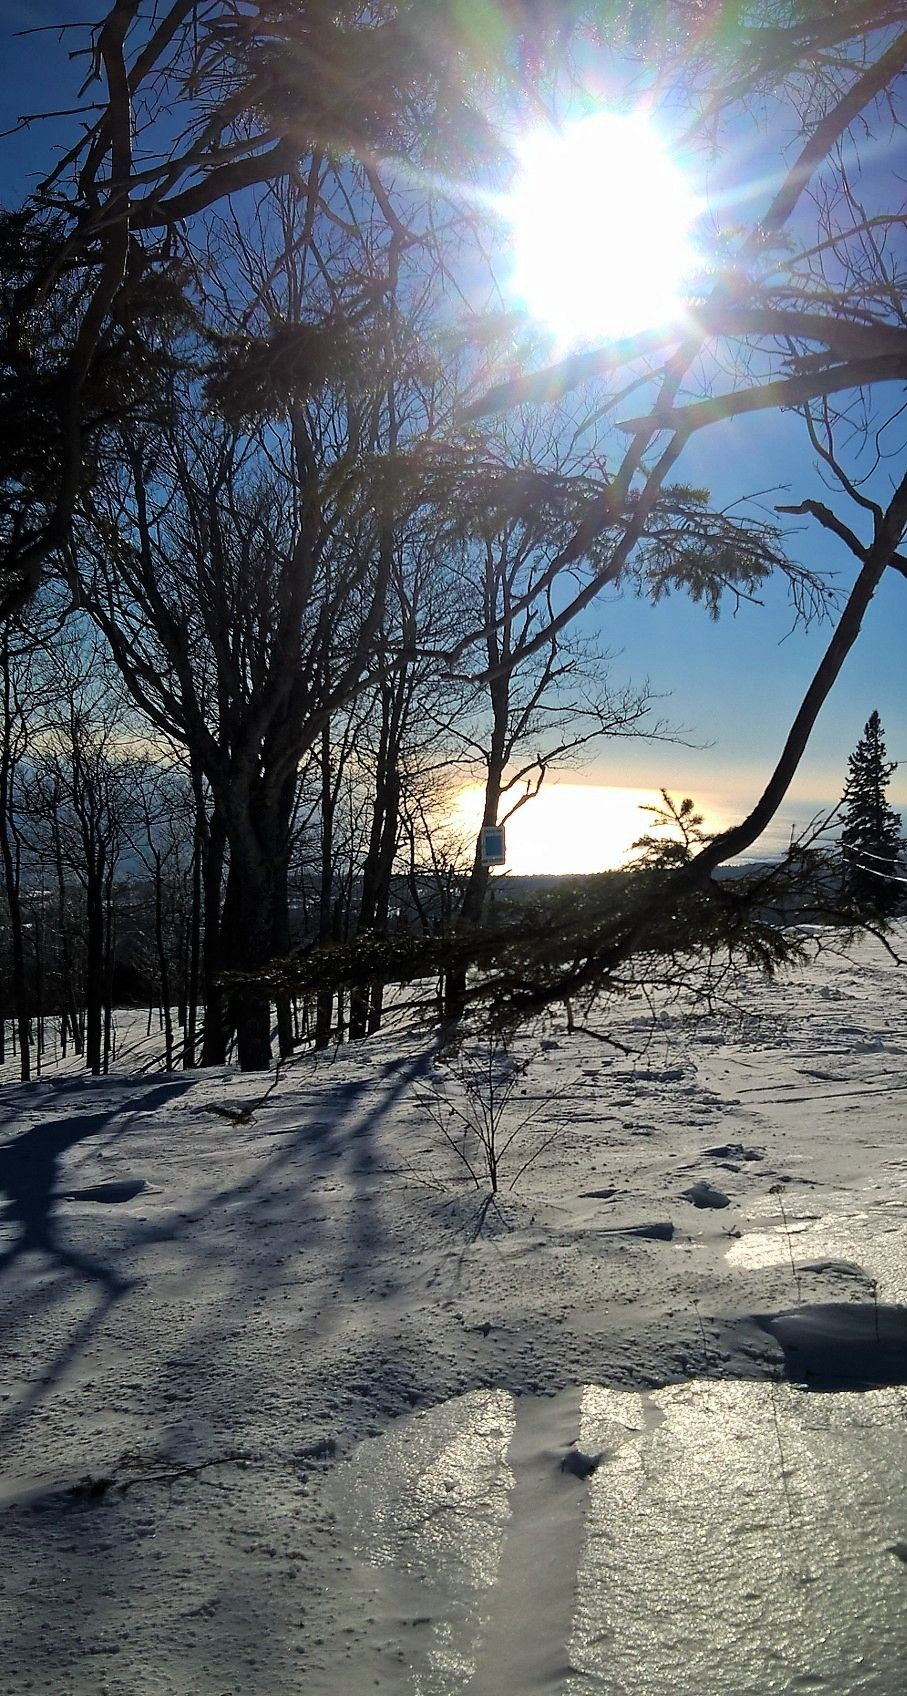 Up, up and away! The wild blue yonder held beautiful vistas at Lutsen Mountains over MLK weekend.